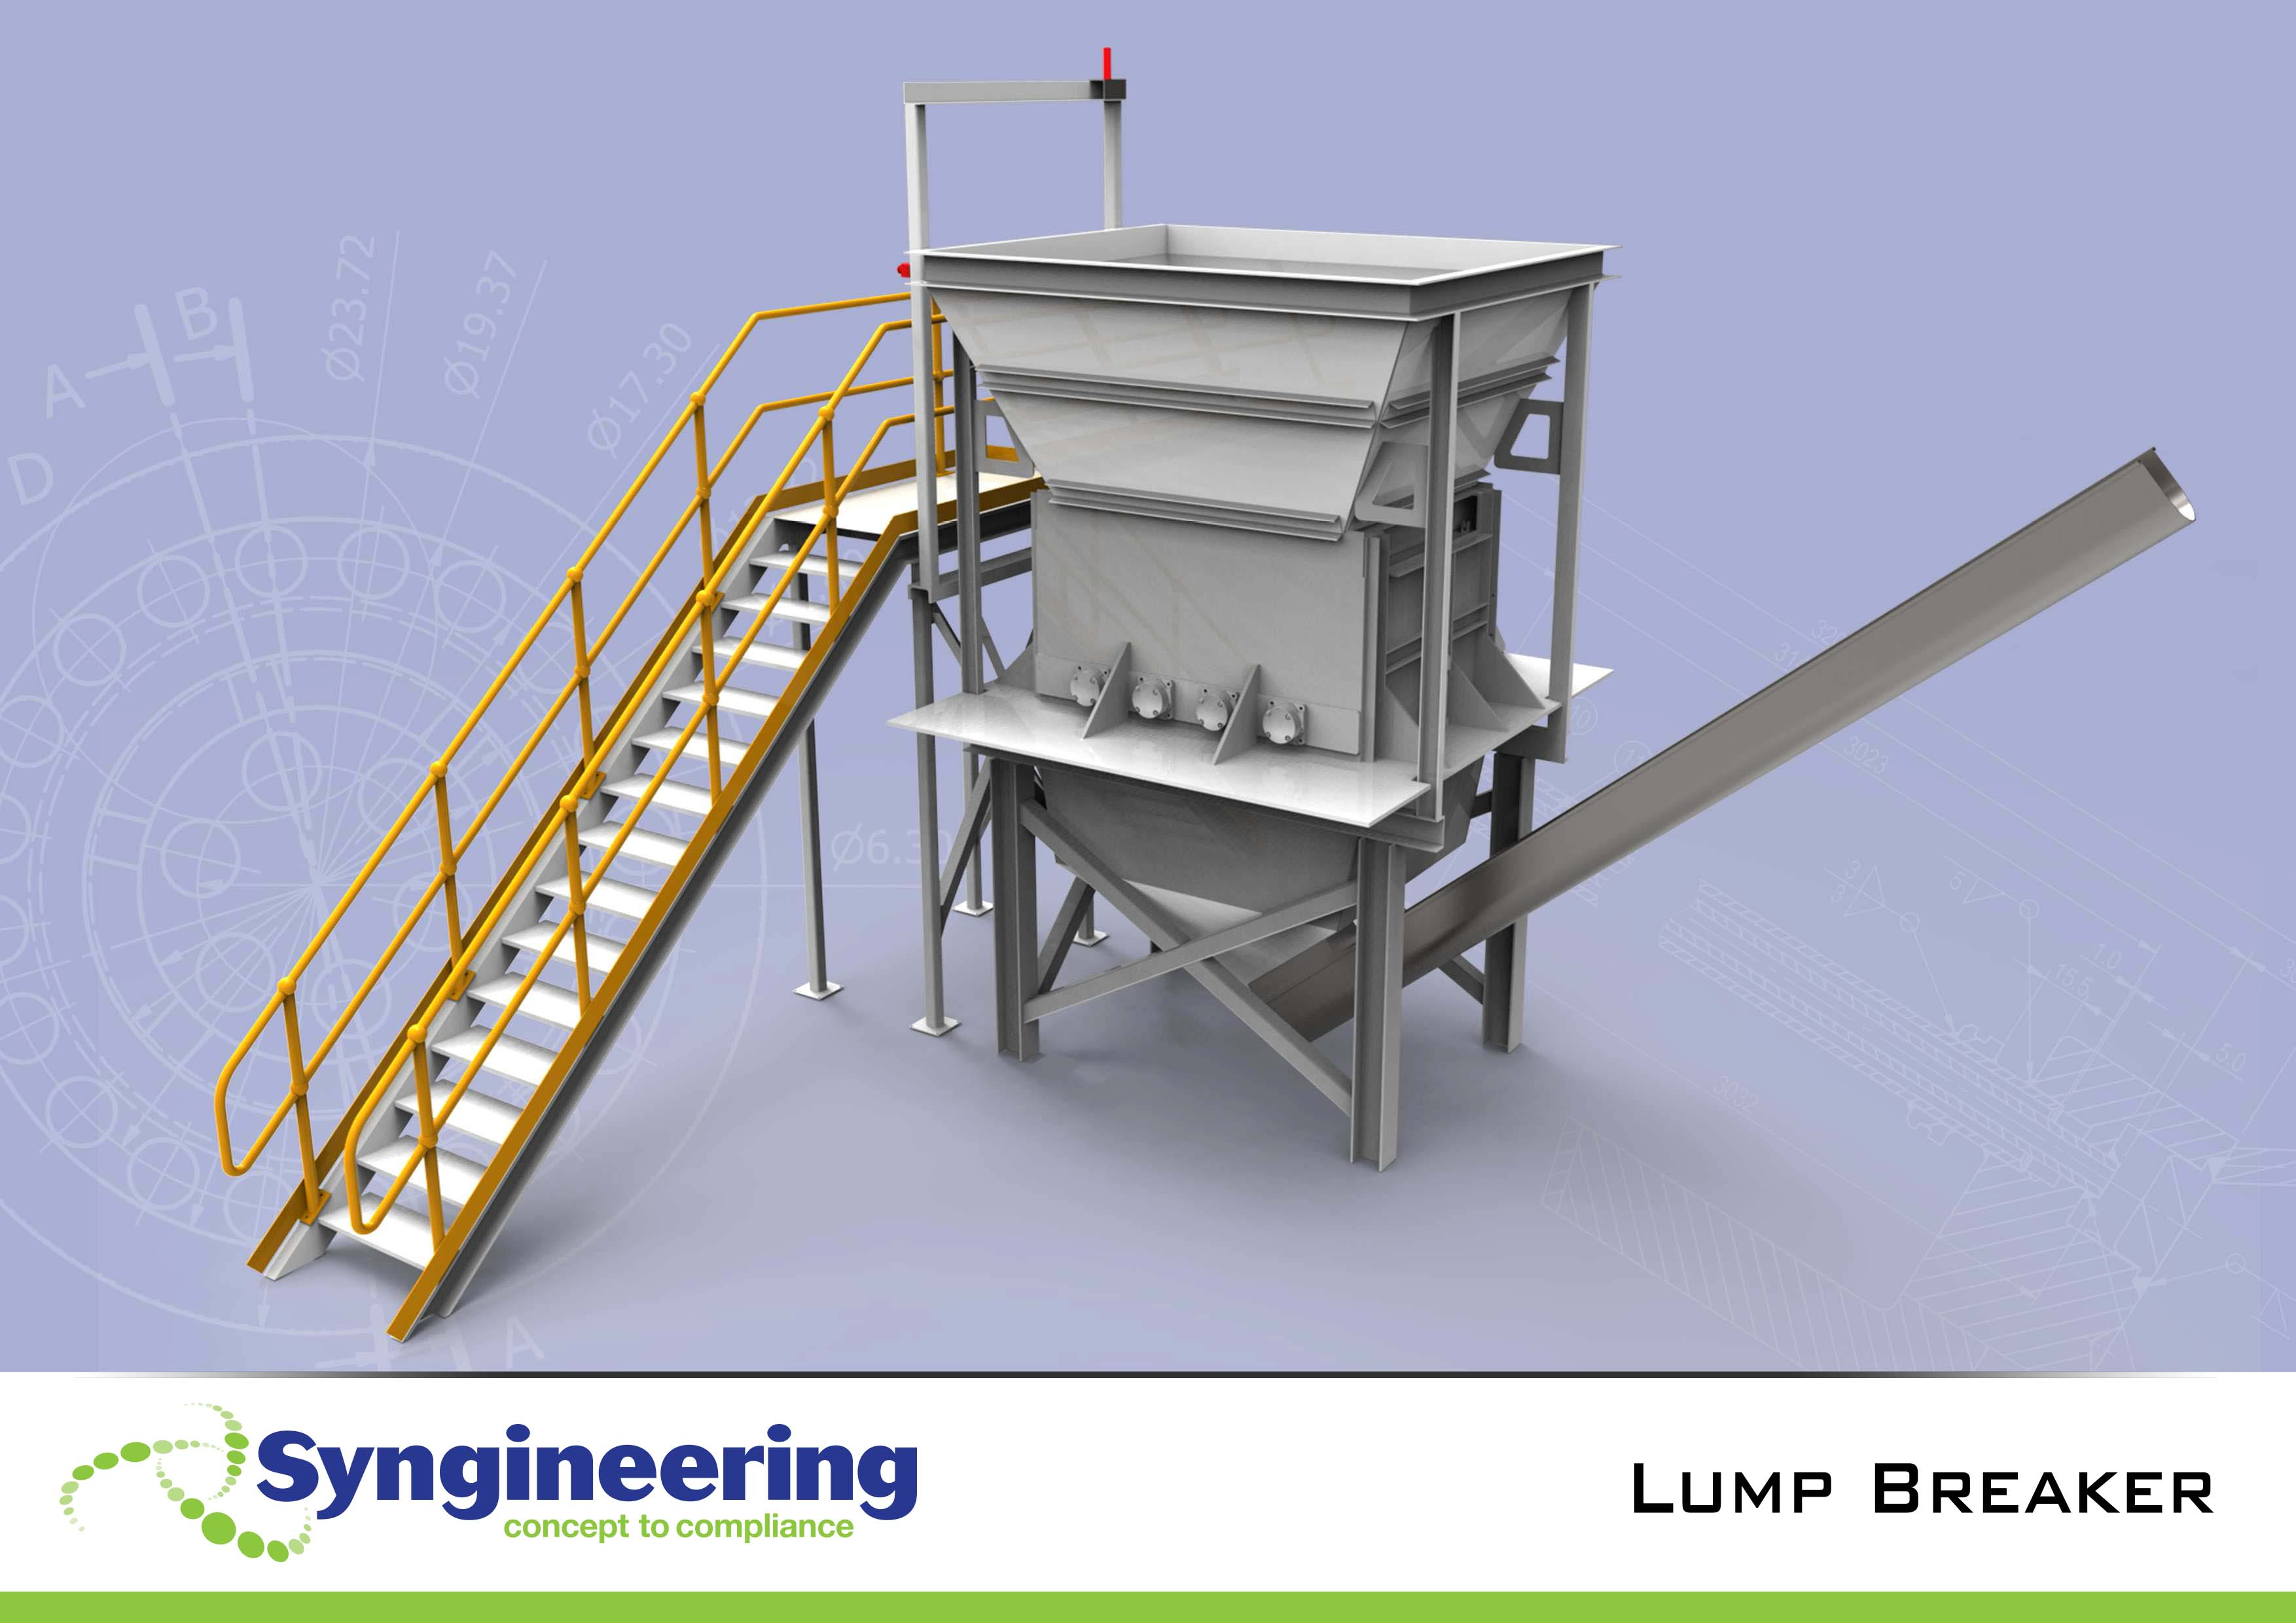 Mechanical engineering projects - Lump Breaker